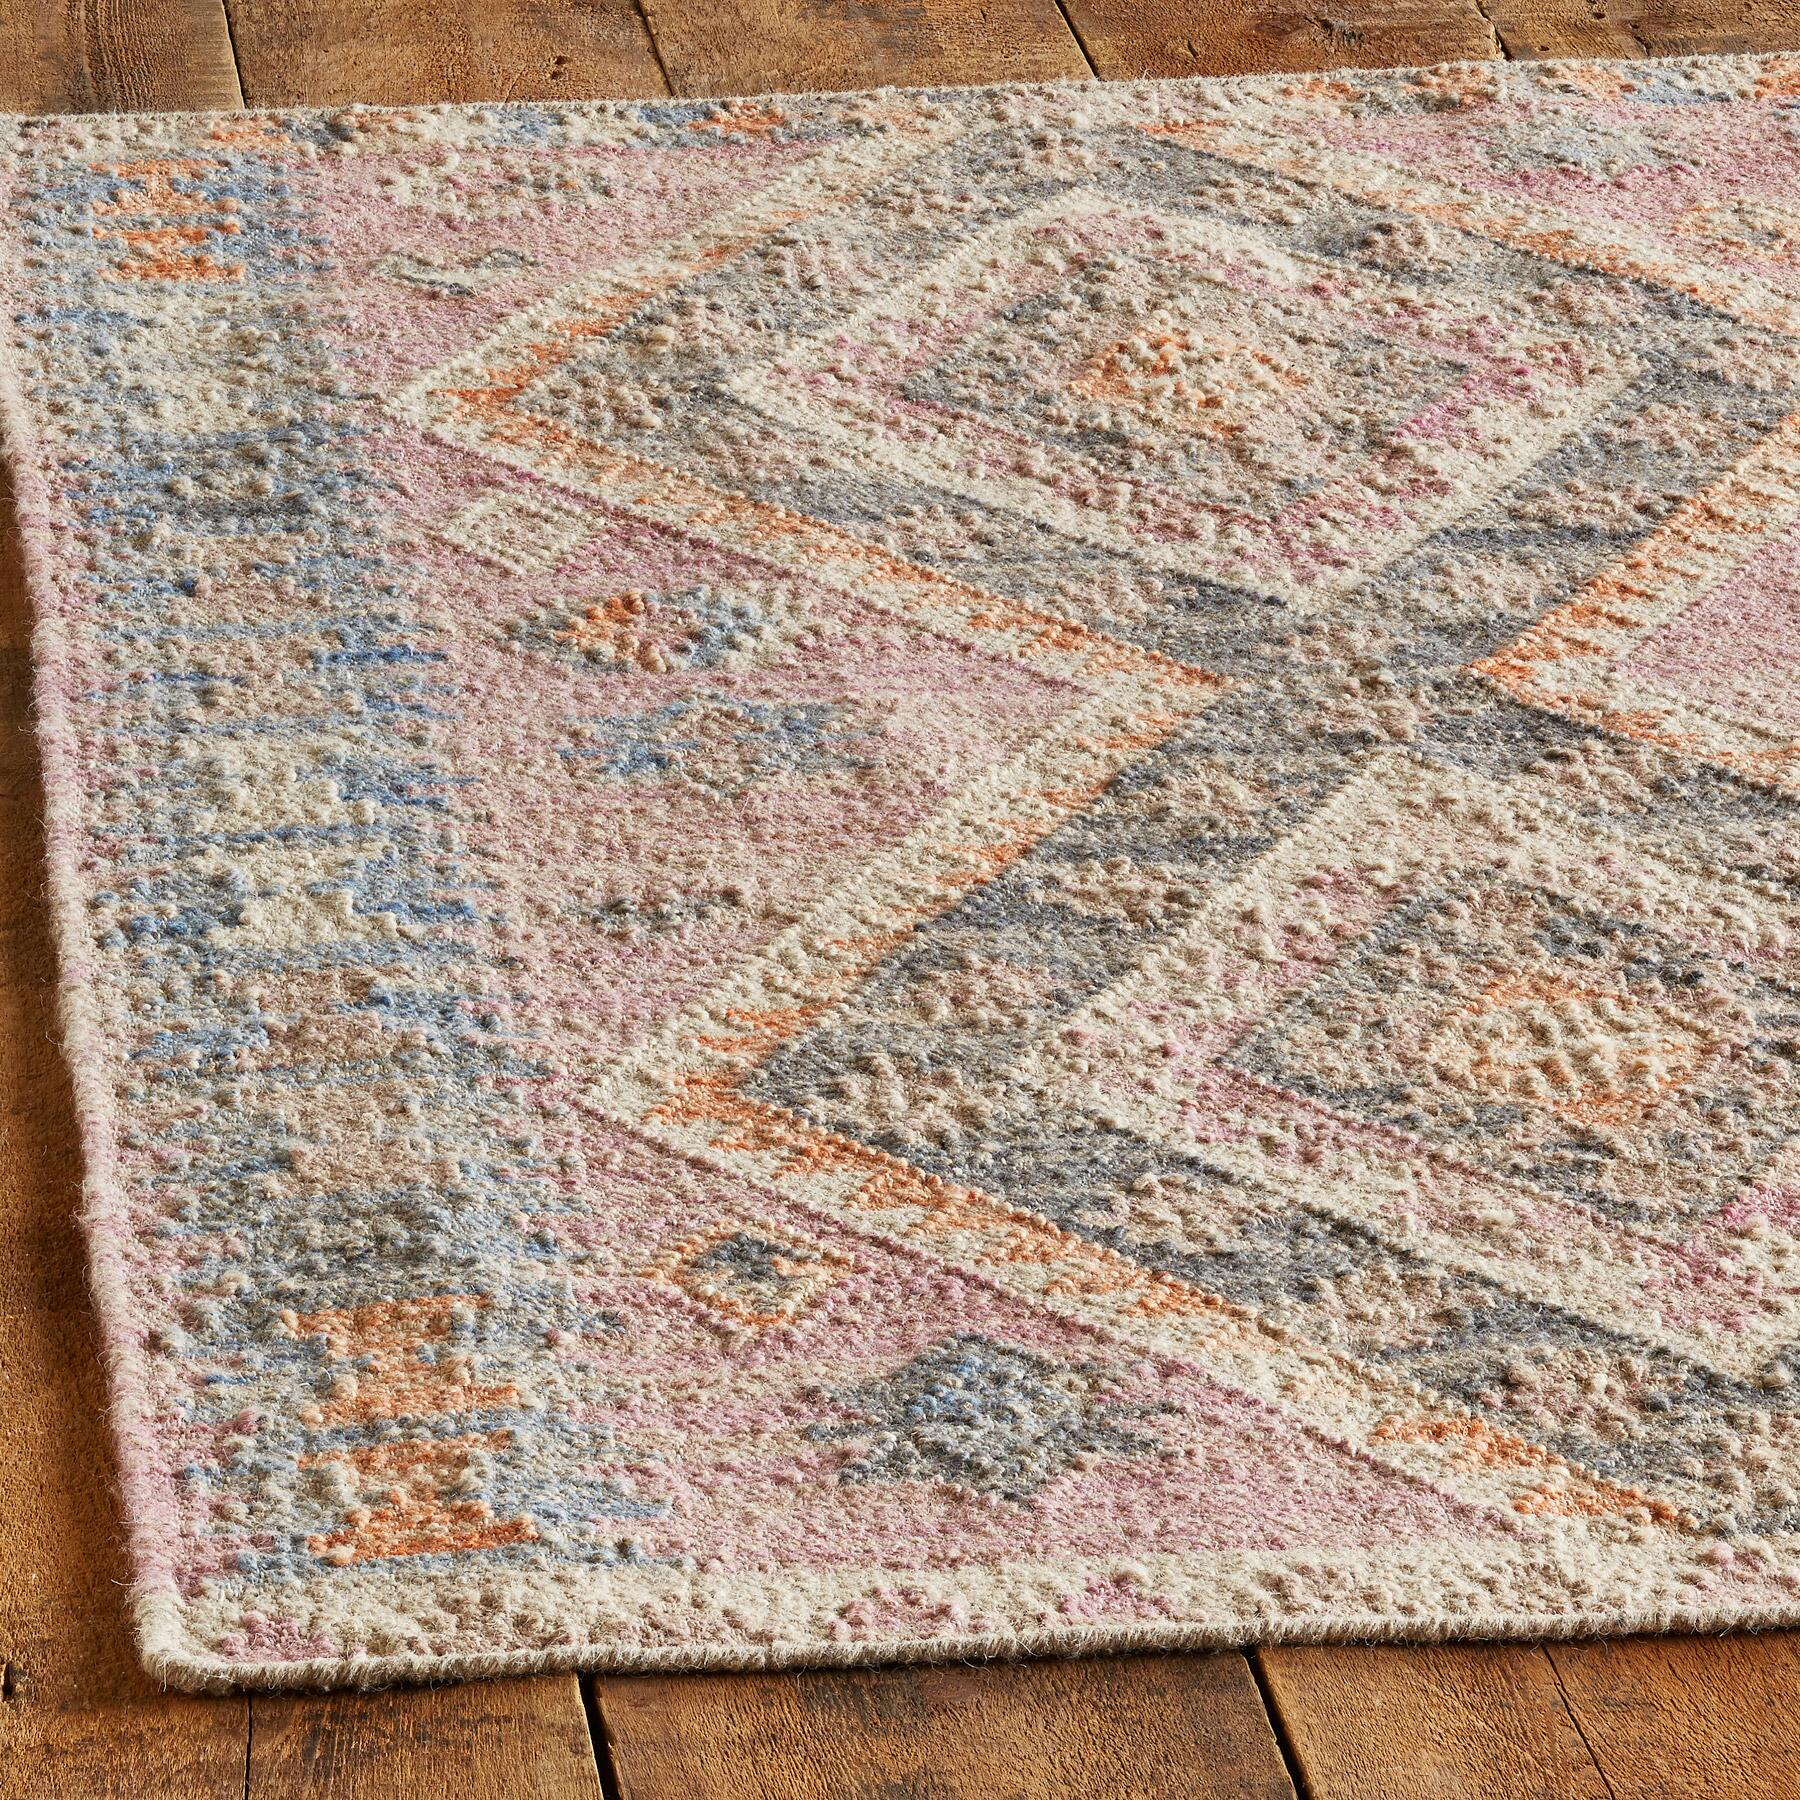 DIAMOND RANCH KILIM RUG - SM: View 2